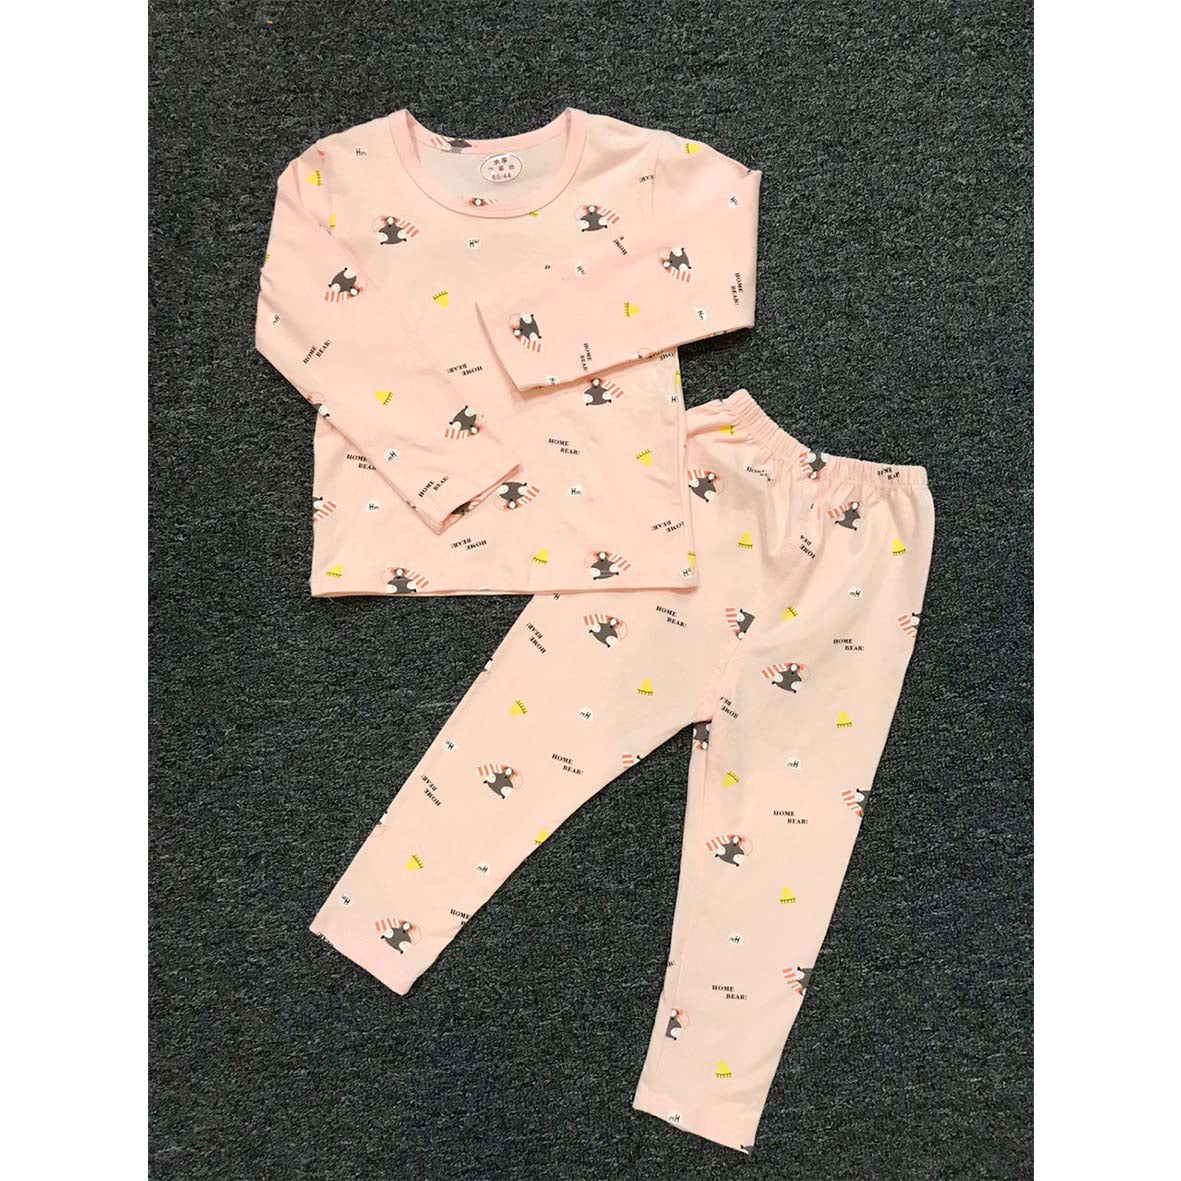 Light Pink Fox Prints 2pcs Pjamas Set